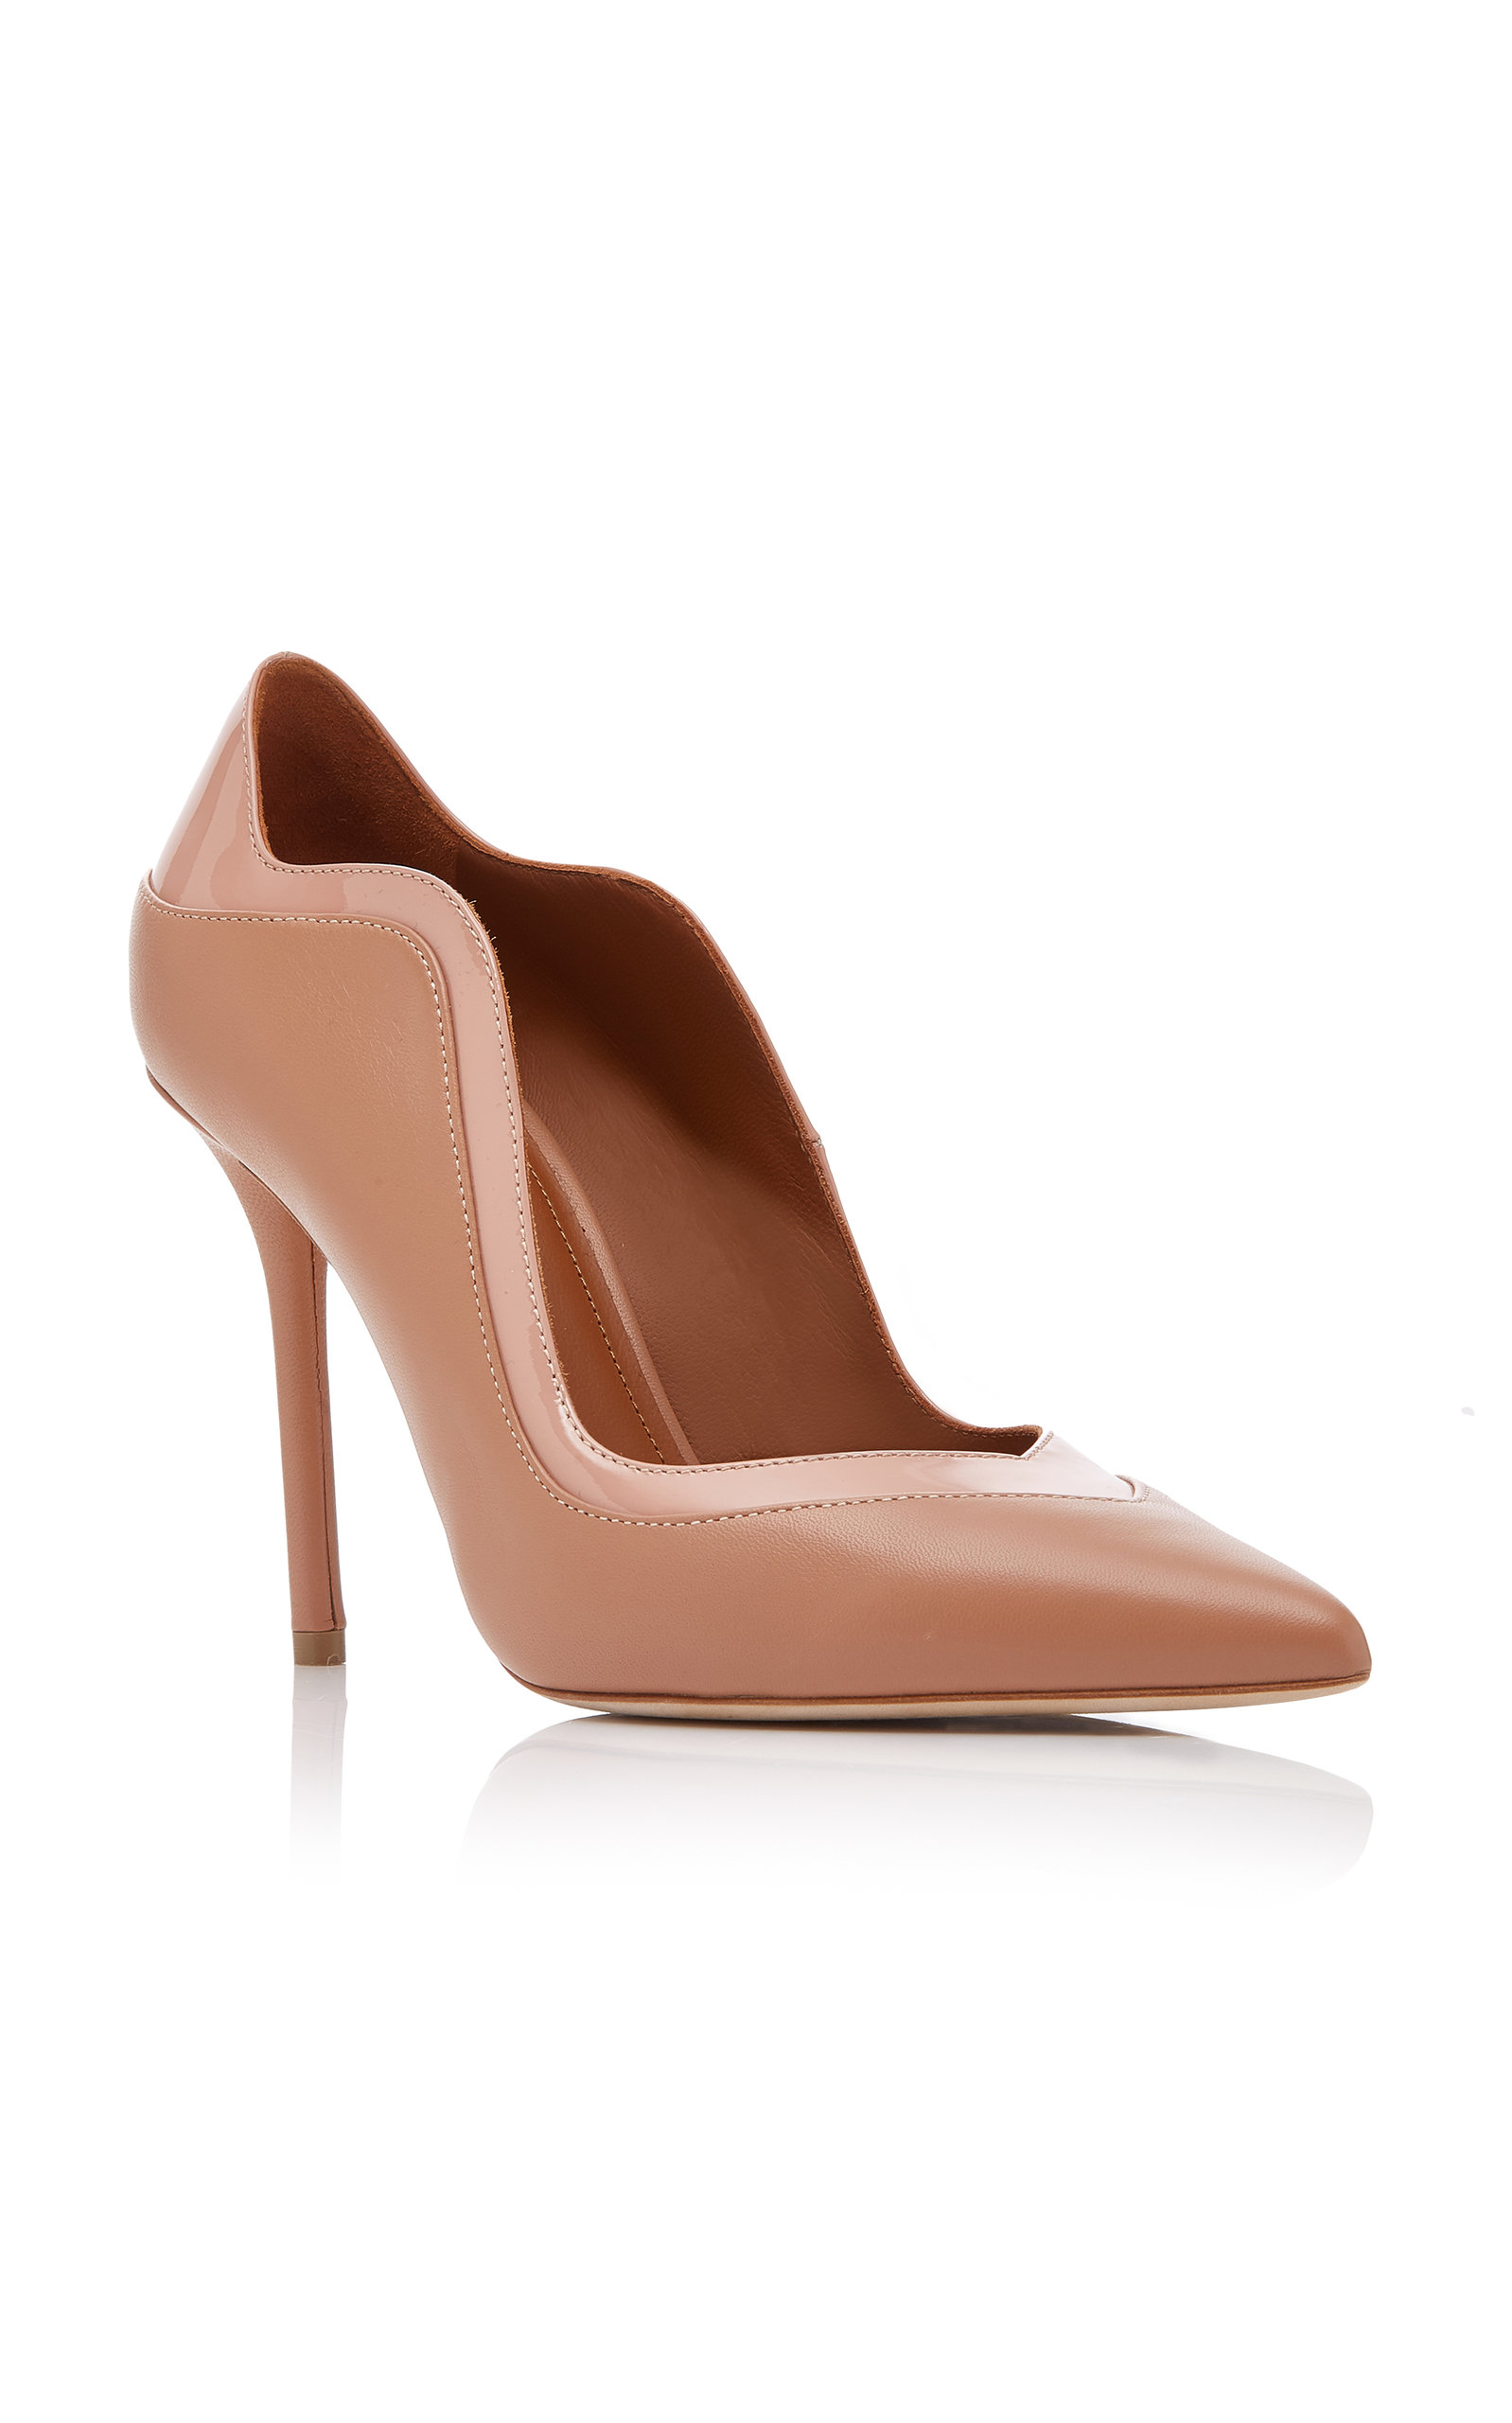 MALONE SOULIERS Penelope Paneled Leather Pumps